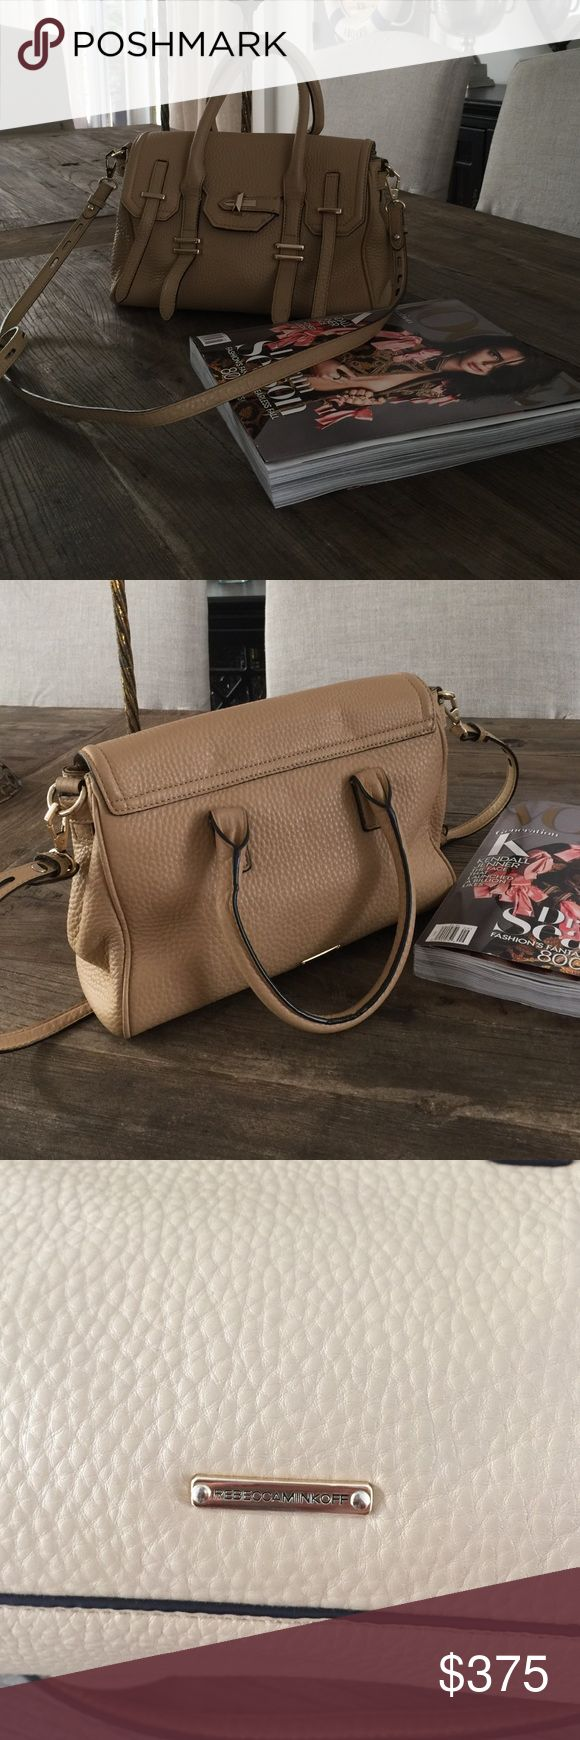 Rebecca Minkoff Tan Purse This medium sized purse can hold just about everything. It is in MINT condition Rebecca Minkoff Bags Crossbody Bags